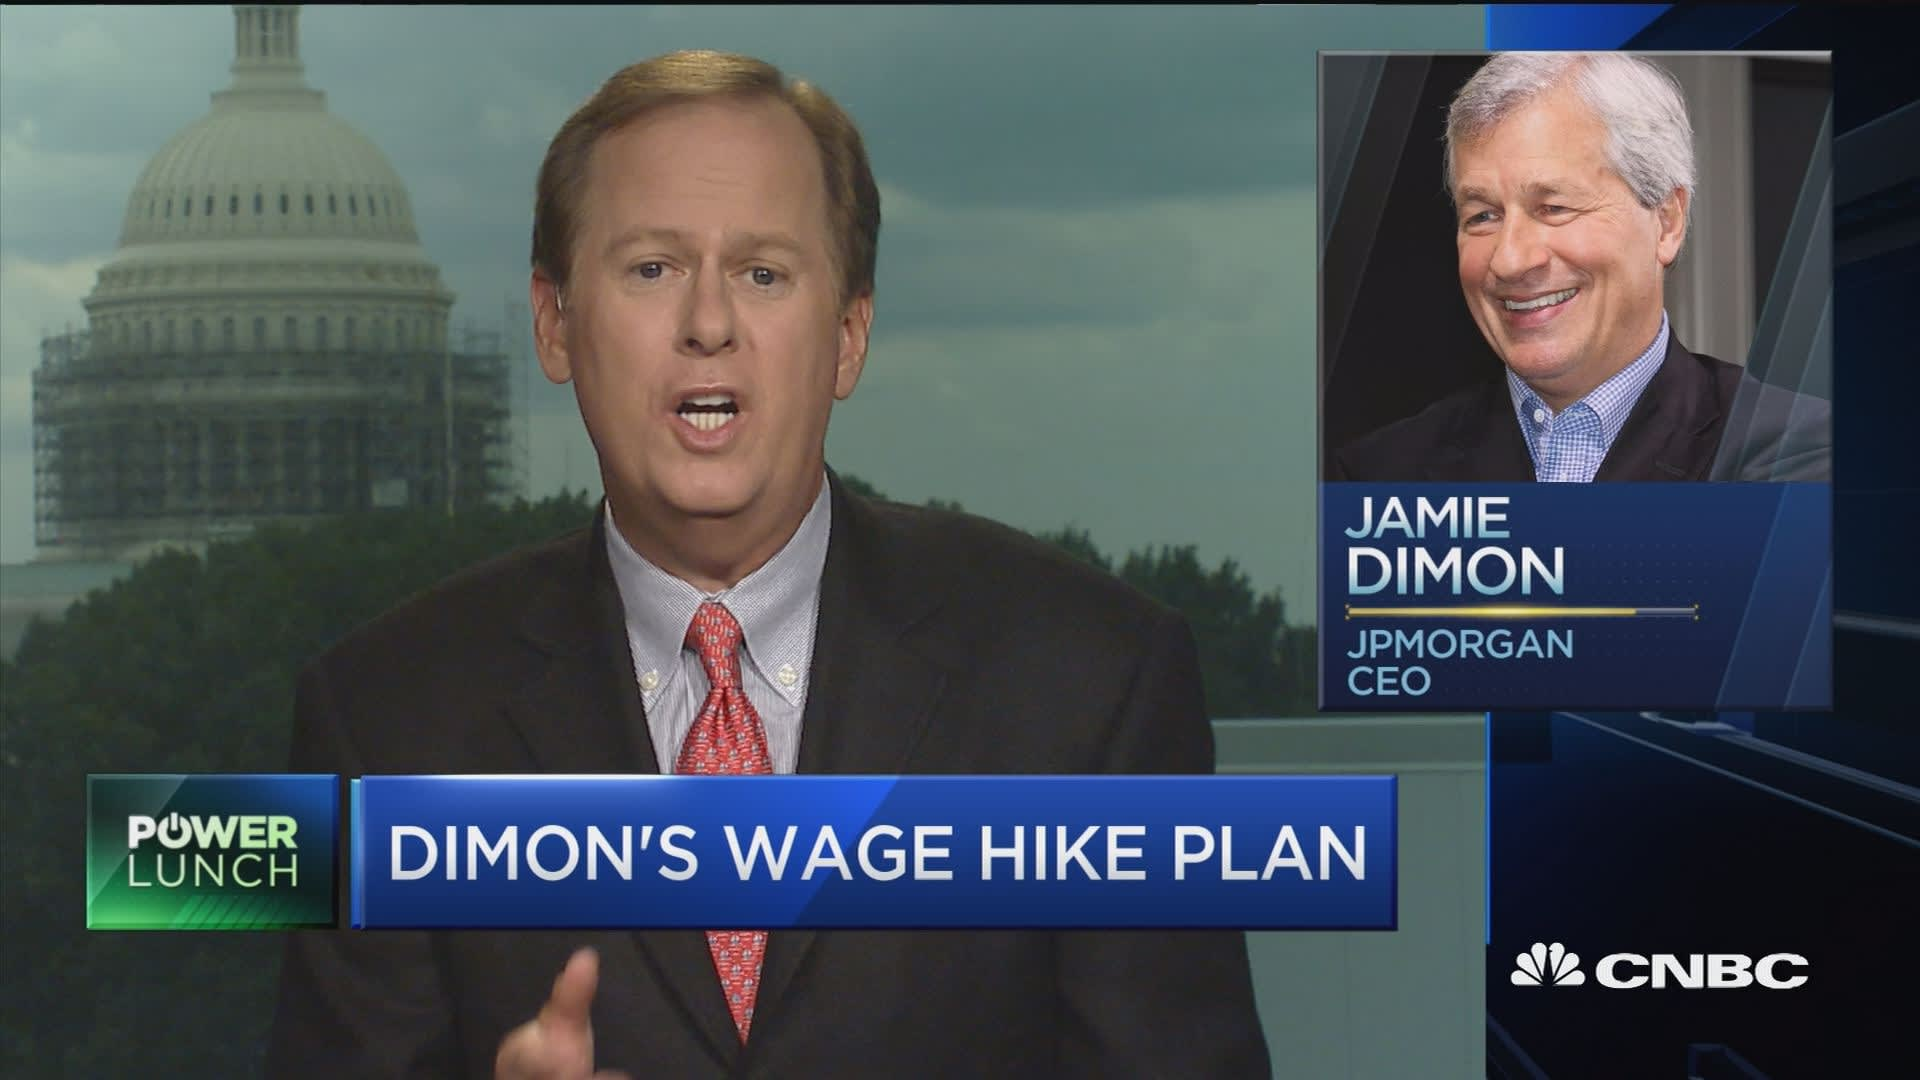 JPMorgan Chase Raises Pay For Minimum Wage Workers